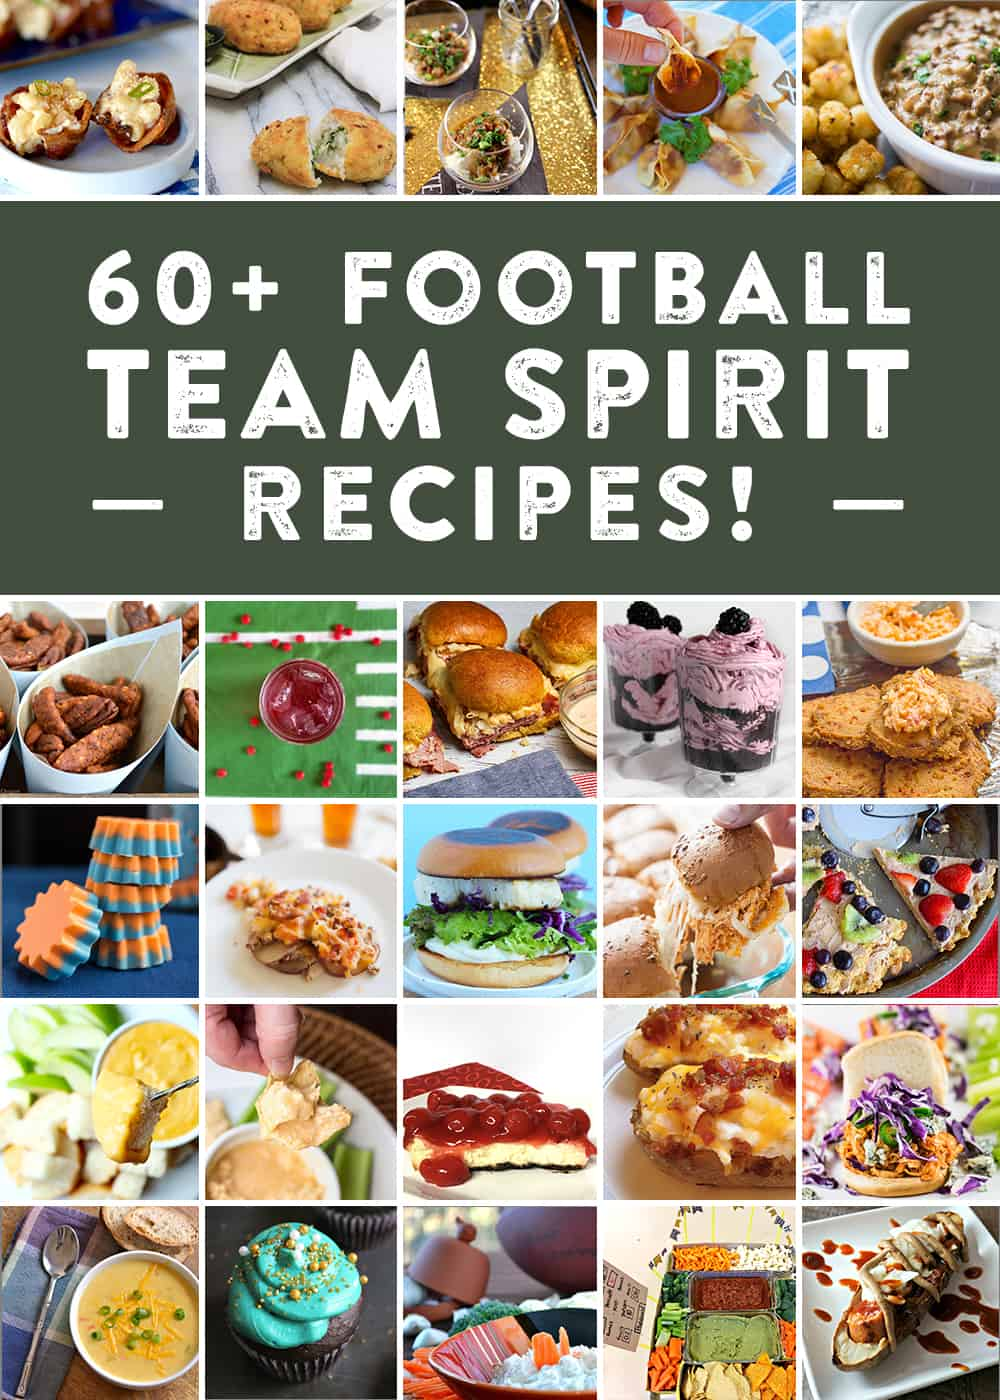 60+ recipes inspired by football teams! Show off your team spirit with everything from appetizer recipes, entree recipes, cocktail recipes, dessert recipes, side dish recipes and more as you cheer on your team! #foodiefootballfans